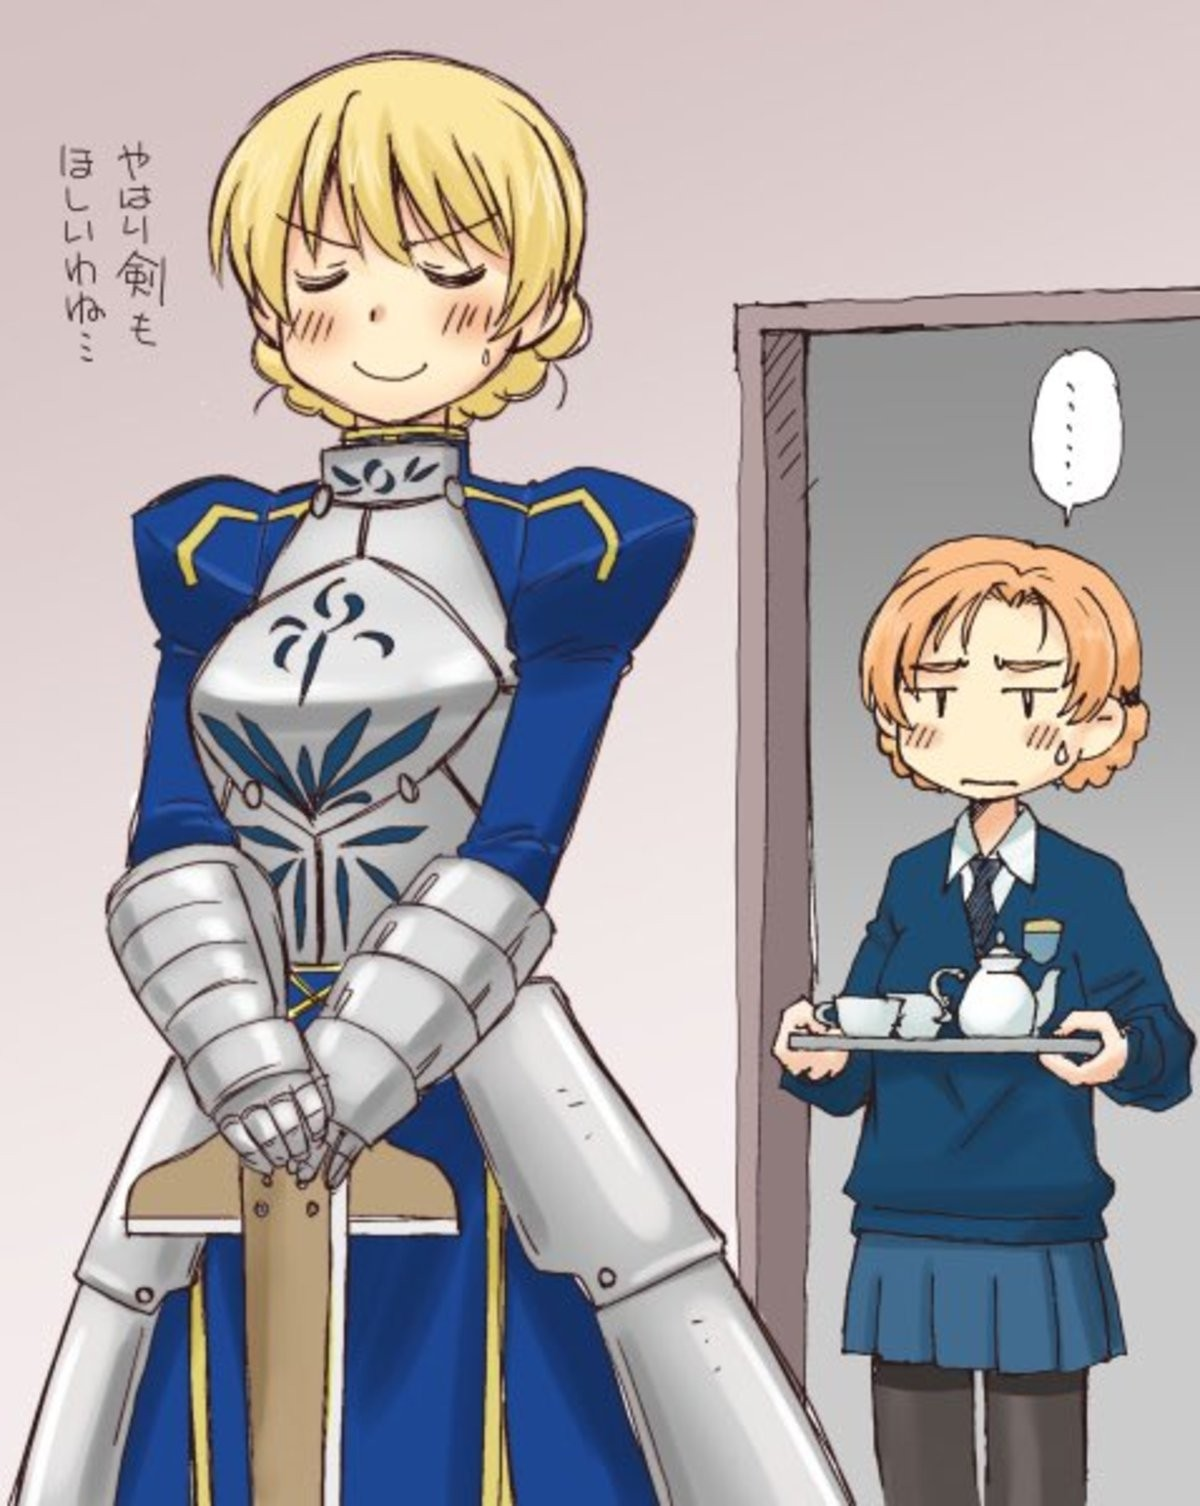 Kht of St. Glorianna. text: I'd really like a sword as well... The other way around... Darjeeling is a good girl. So noble. So pure.